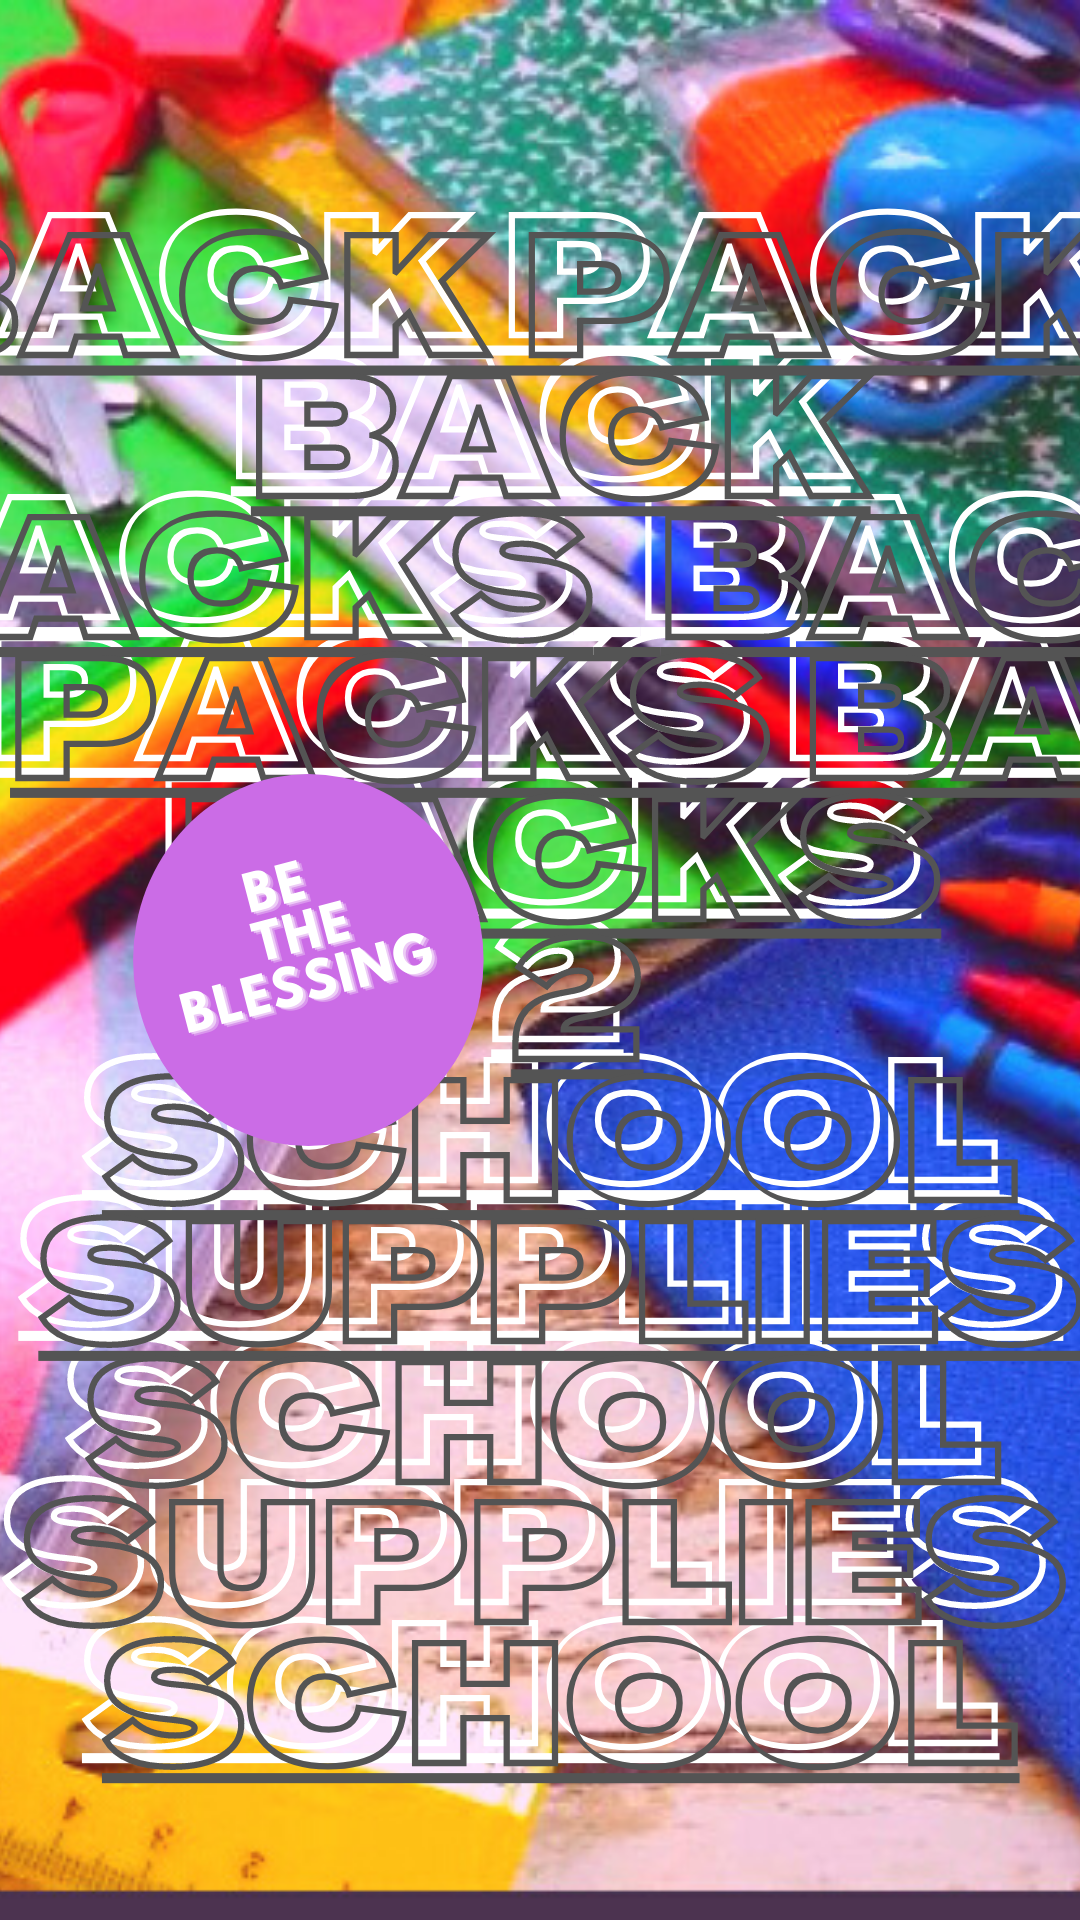 2020 BackPacks N School Supplies Fundrai